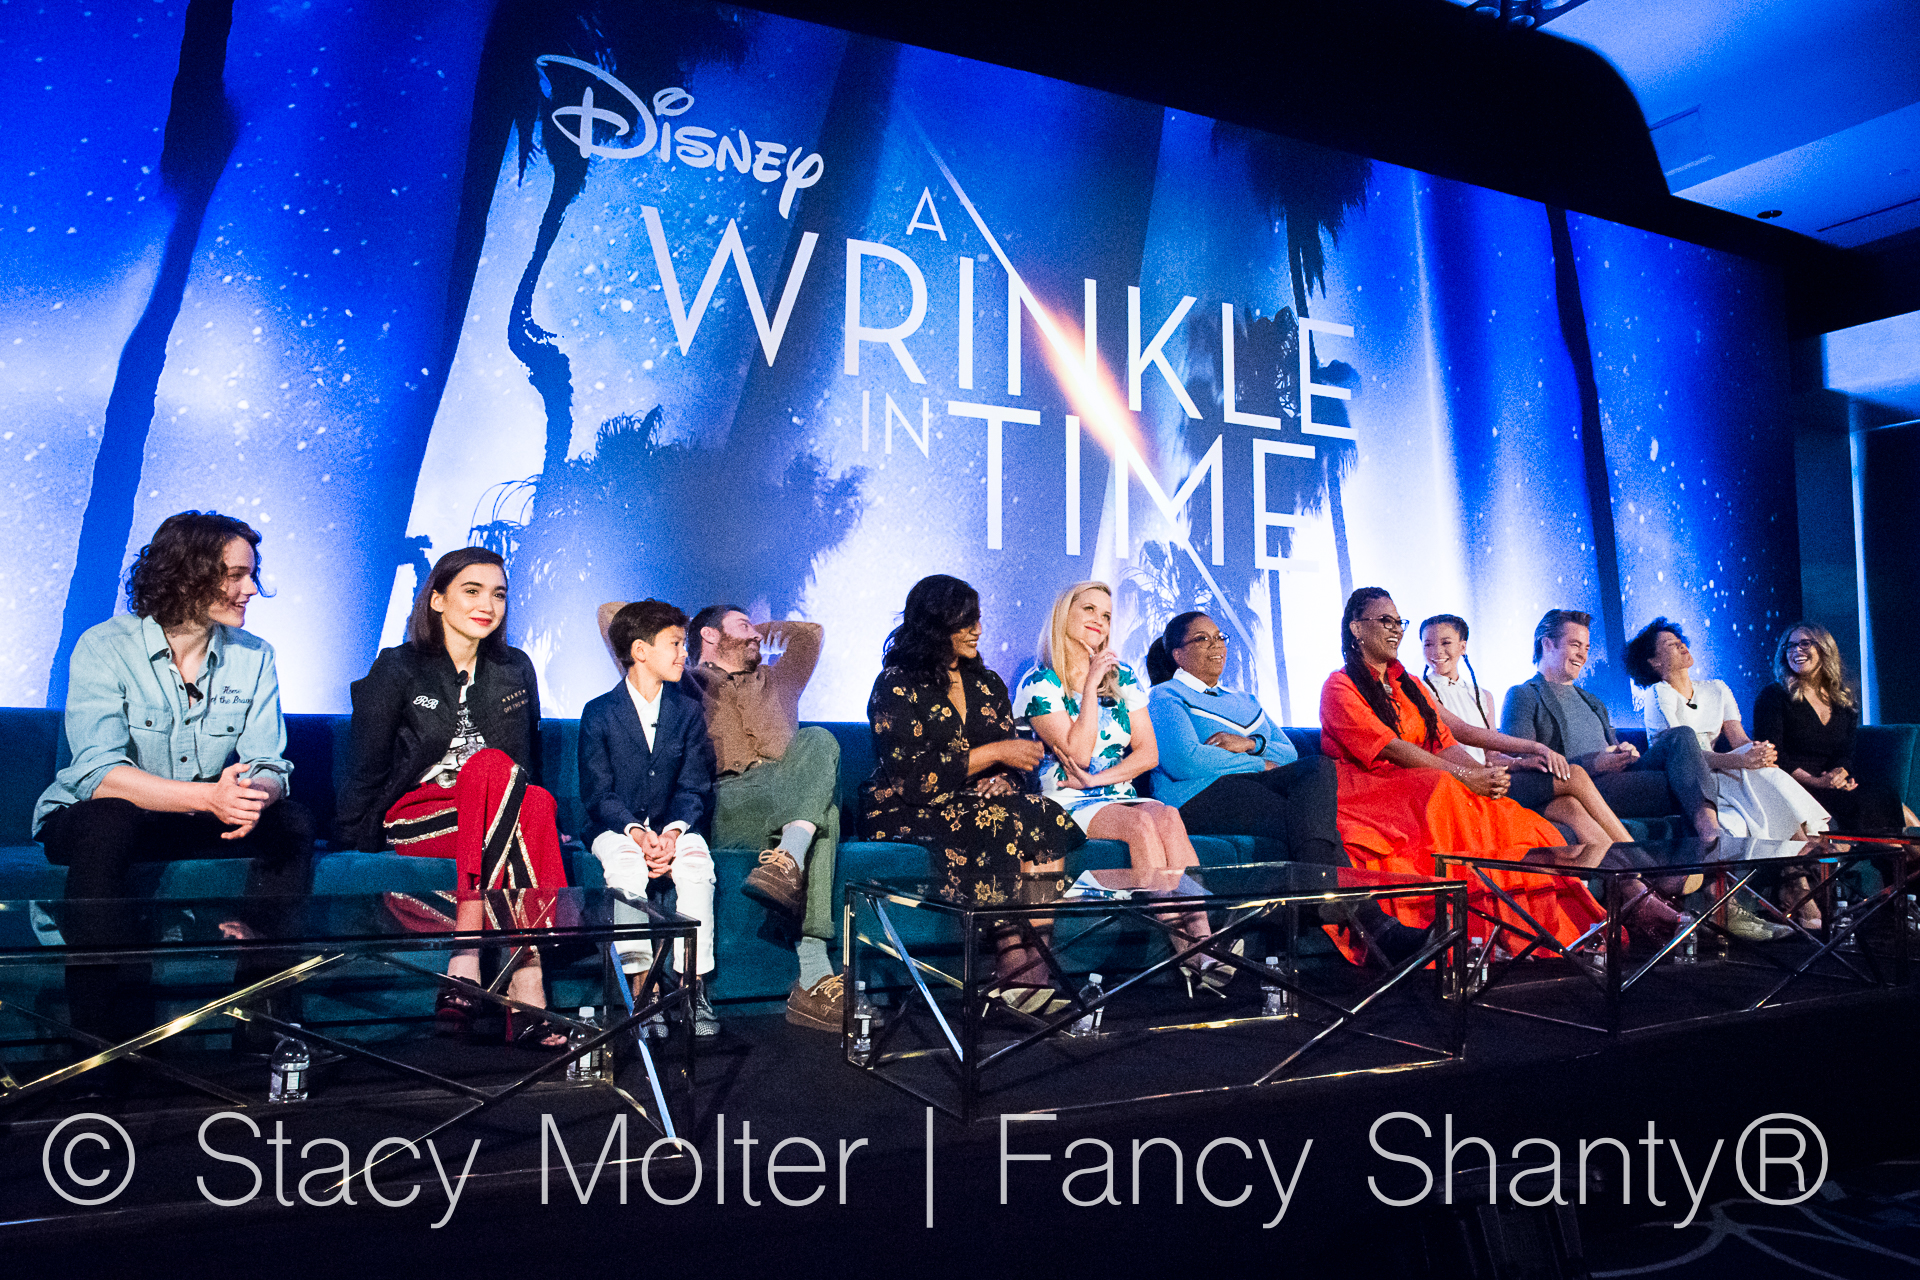 Disney's A Wrinkle In Time Cast Interviews